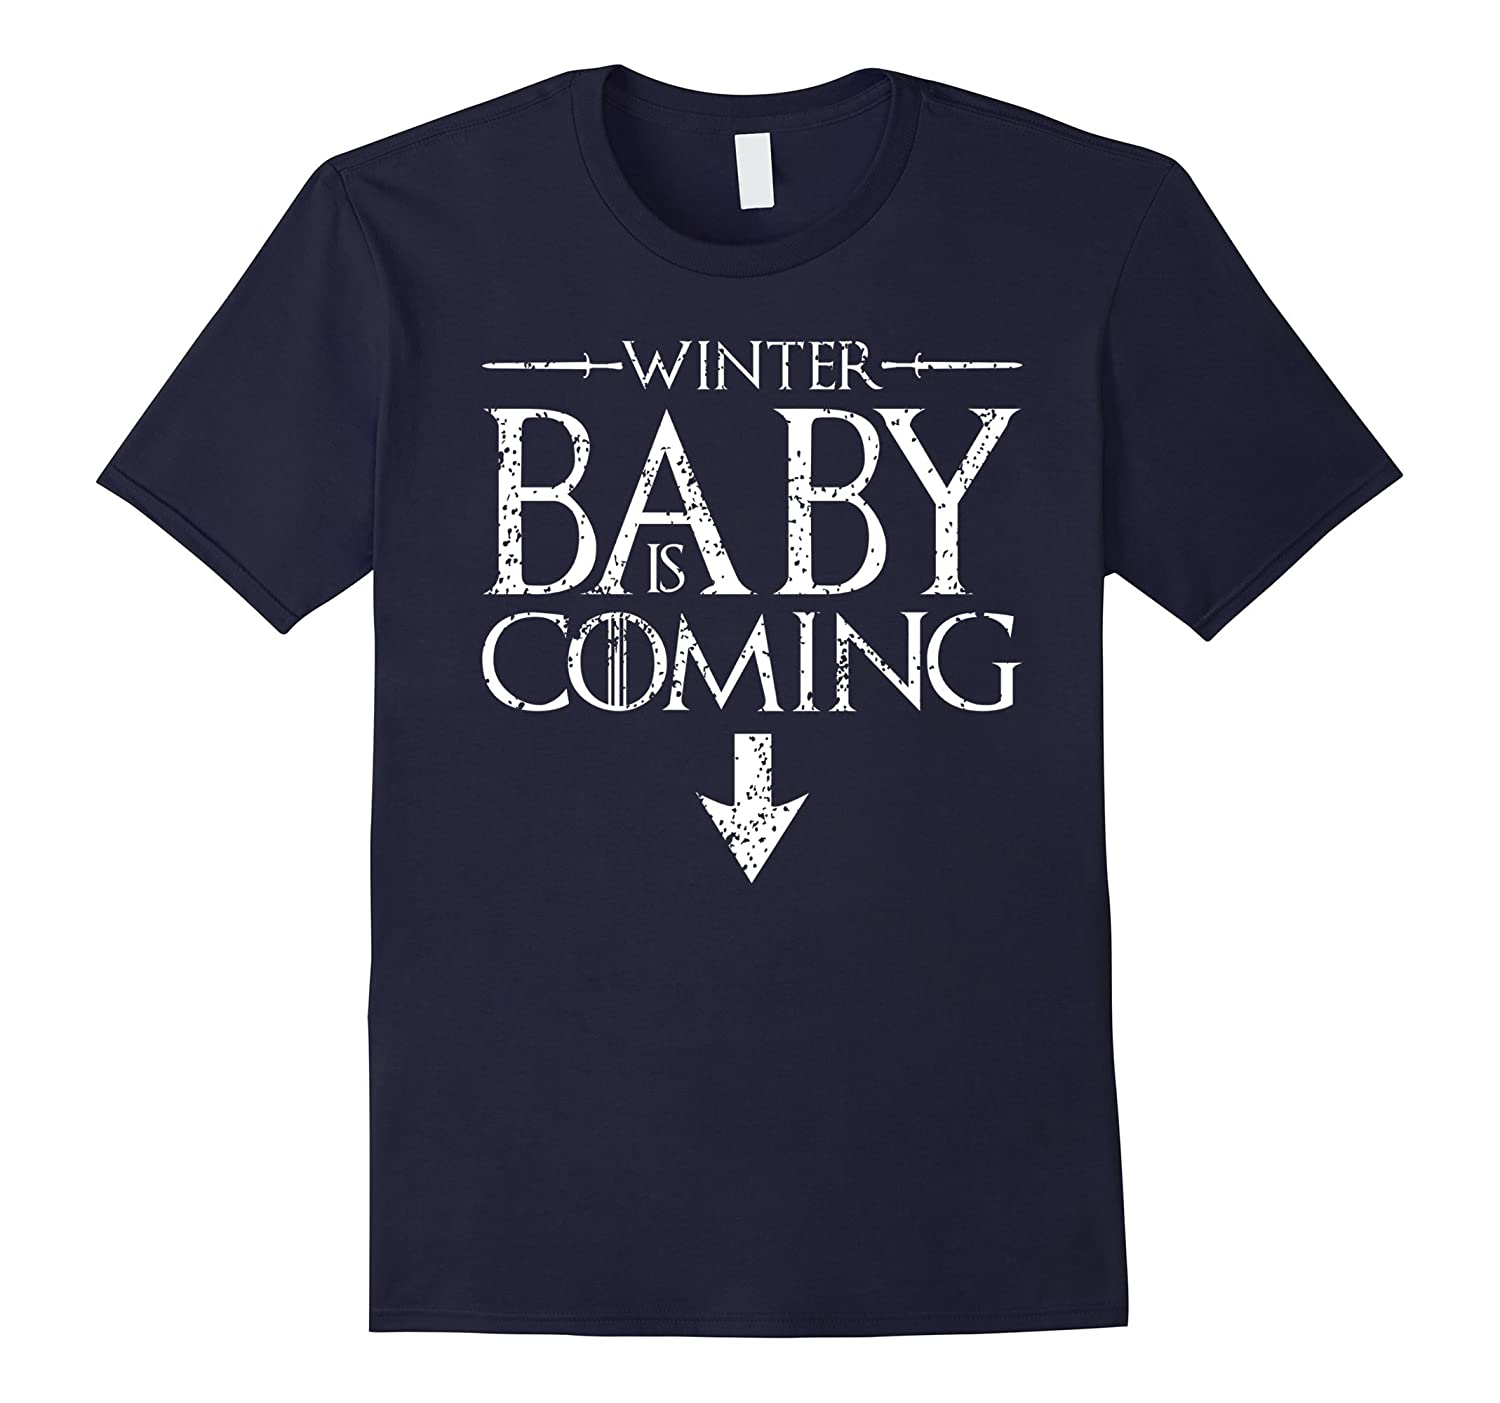 Funny Humor Maternity Shirts Sayings- Winter Baby is Coming-BN